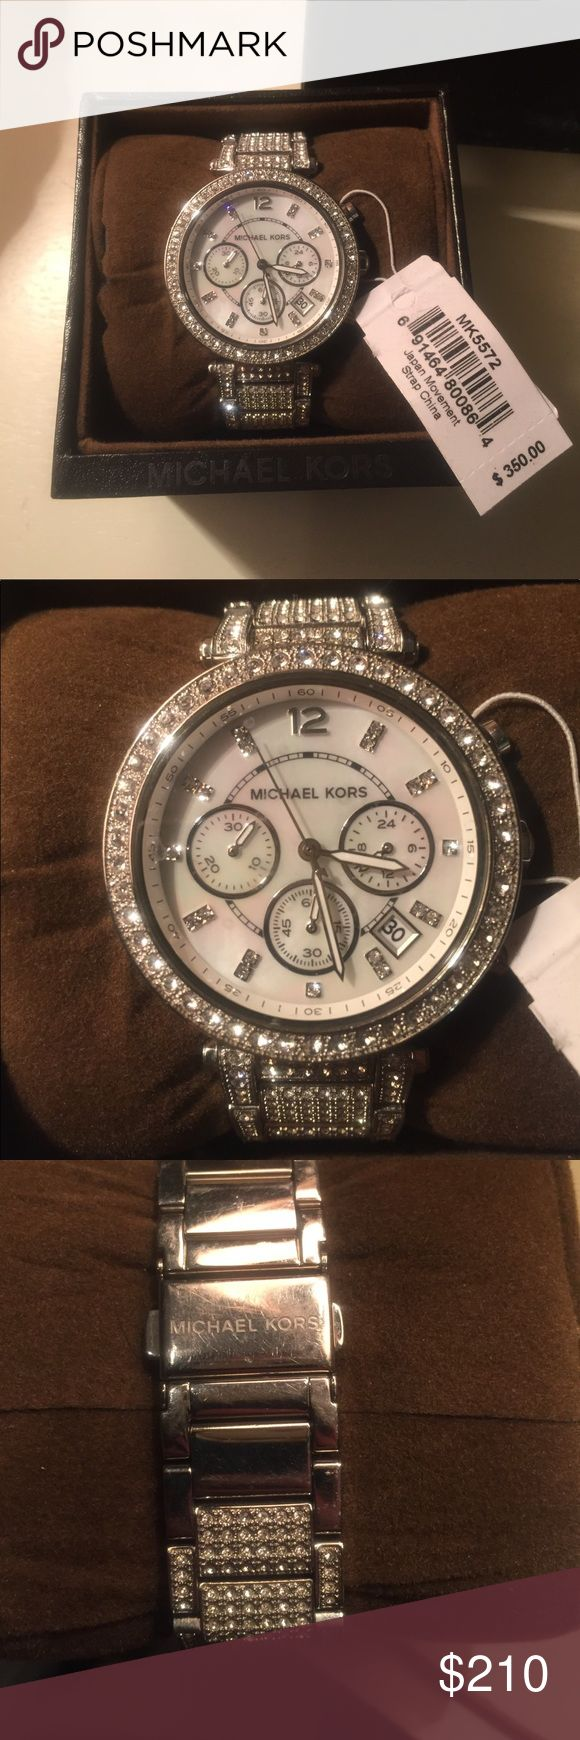 Brand New Michael Kors Silver Watch This brand new Michael Kors Watch has diamonds covering the band. The face includes three other watches for a minute, hour, and to tell military time. It also can tell you he date. It comes with extra lengths, guide, and Michael Kors box. It is new with tags and was originally $350. KORS Michael Kors Accessories Watches